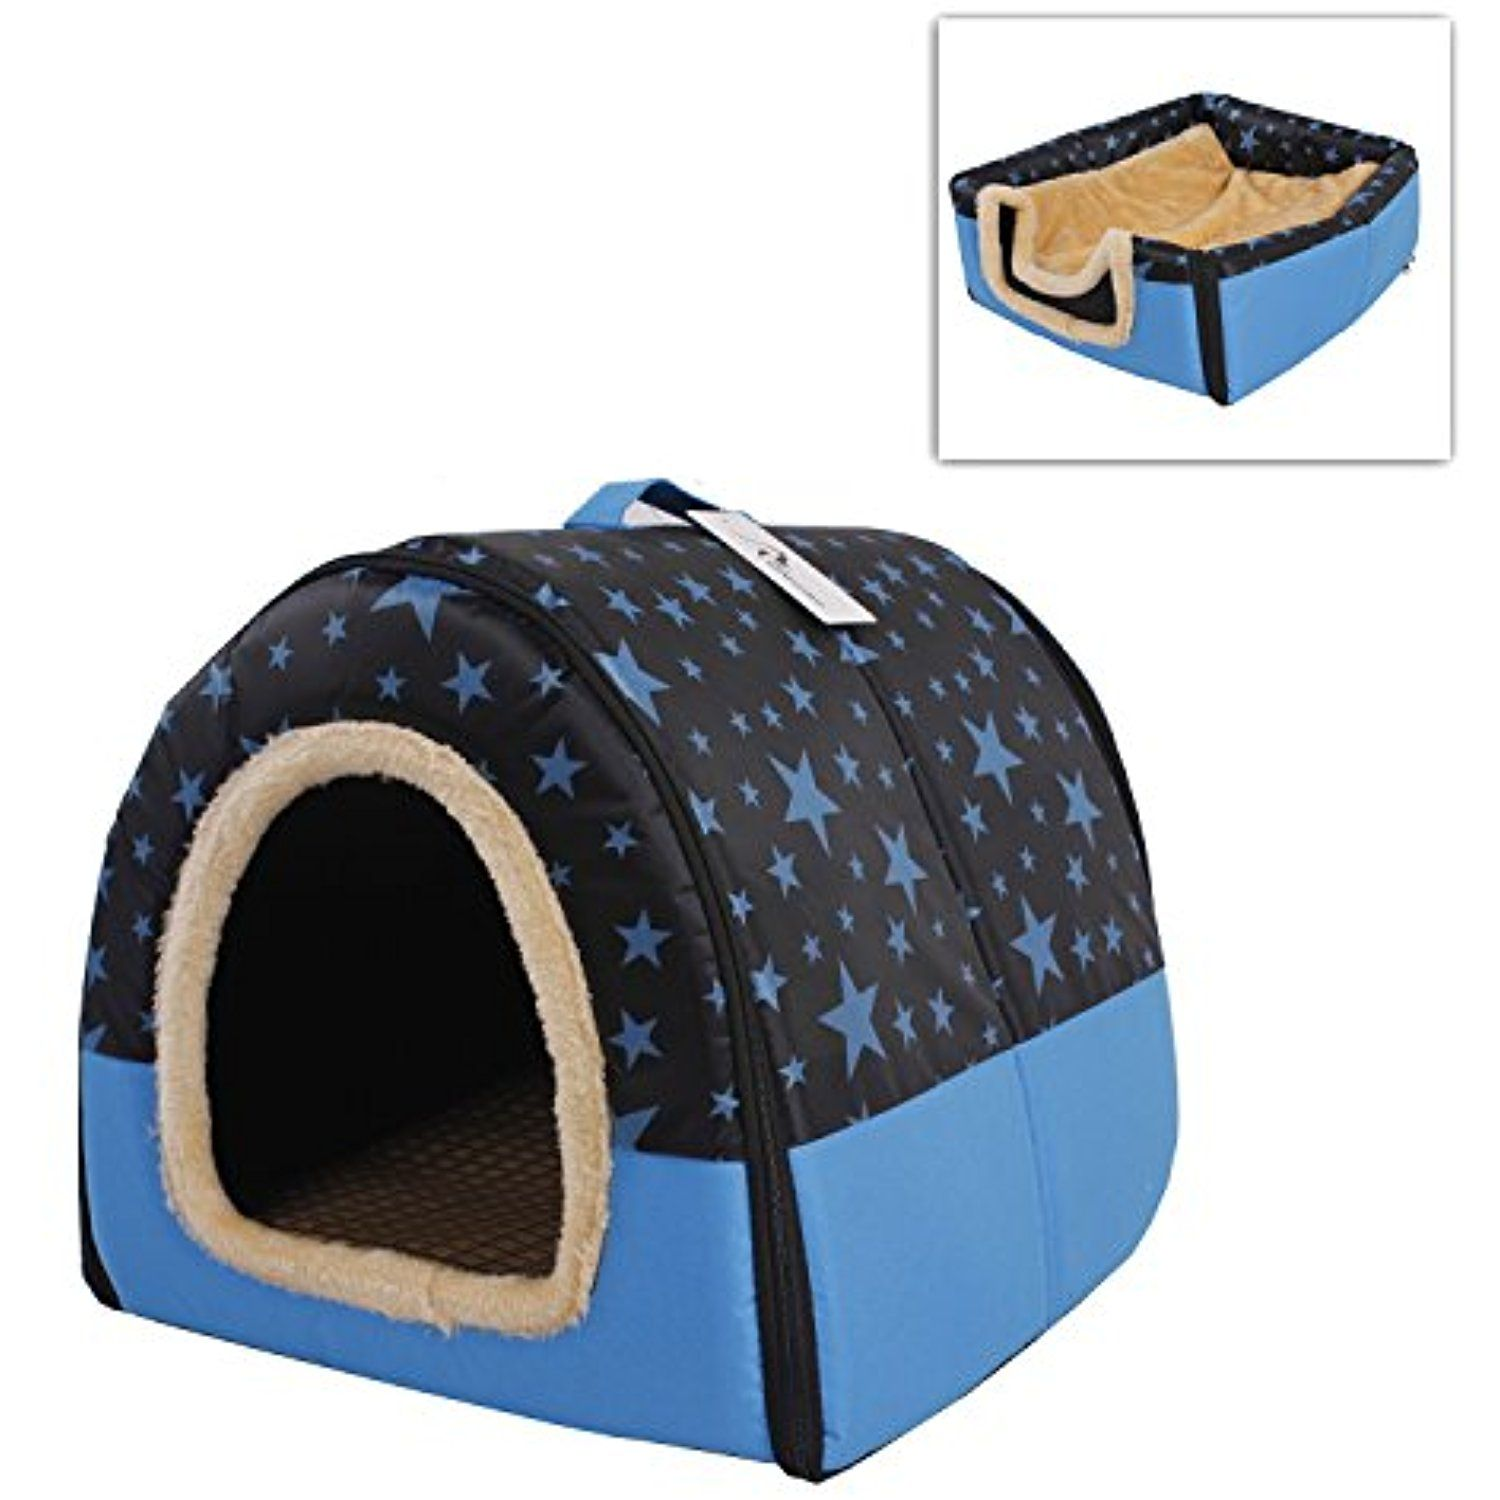 Most Popular Large Outdoor Dog House Shelter Kennel Weatherproof Winter Cold Summer Heat Large Dog P Cool Dog Houses Large Dog House Igloo Dog House